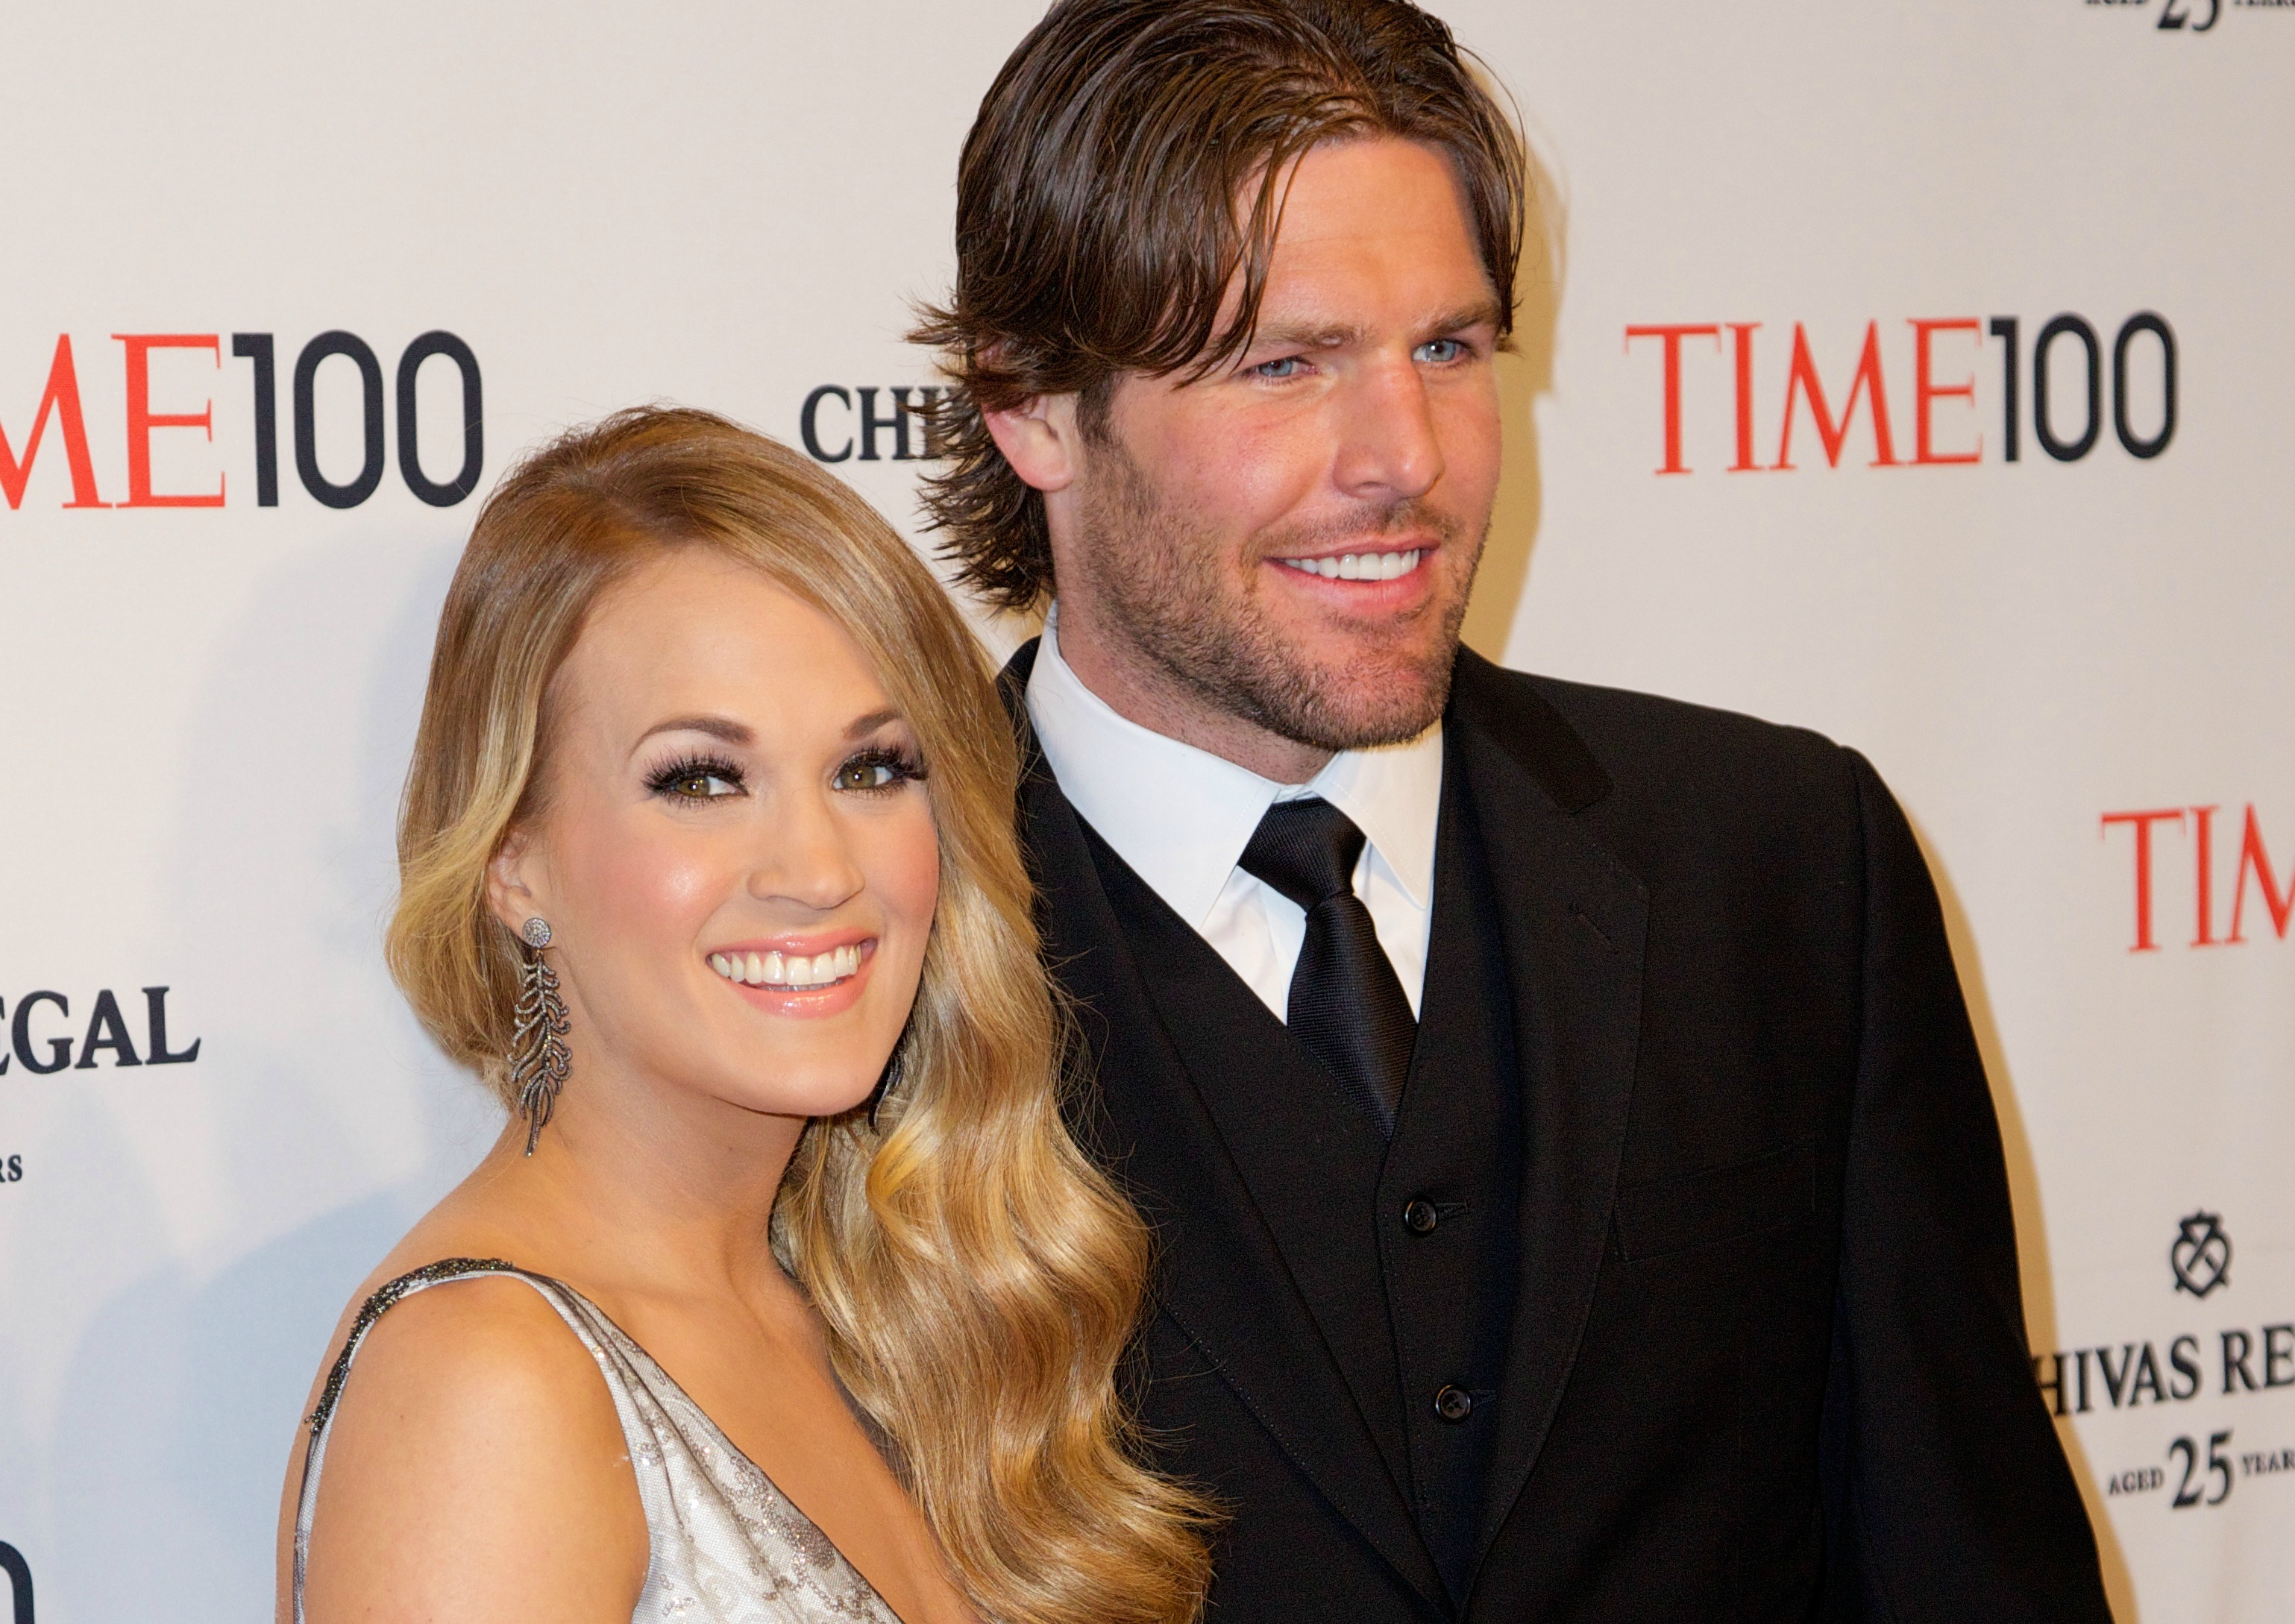 Carrie underwood s husband says he quot stays out of her way quot